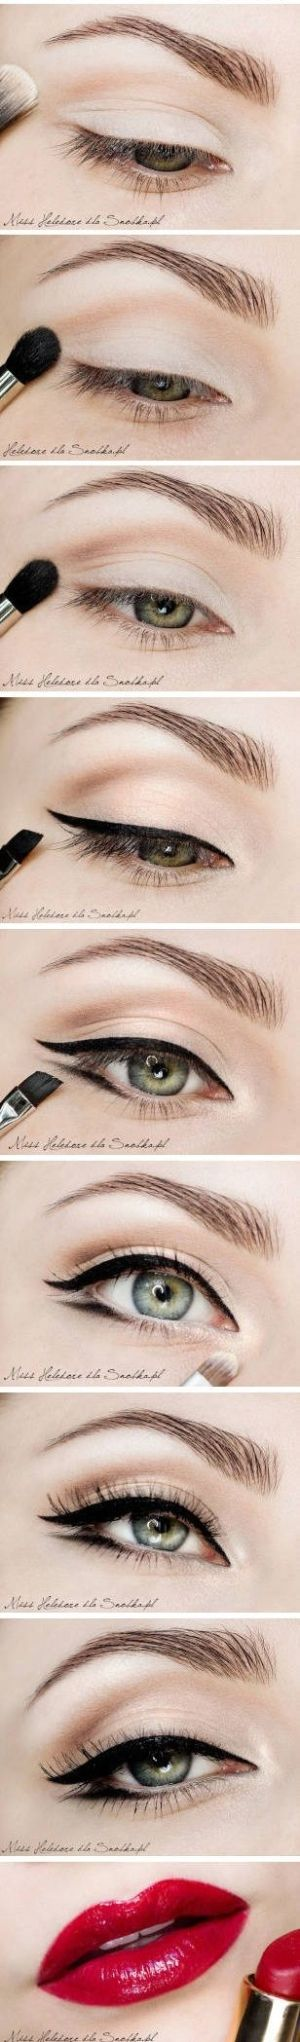 #tutorial #eyeliner by eva.sarneel